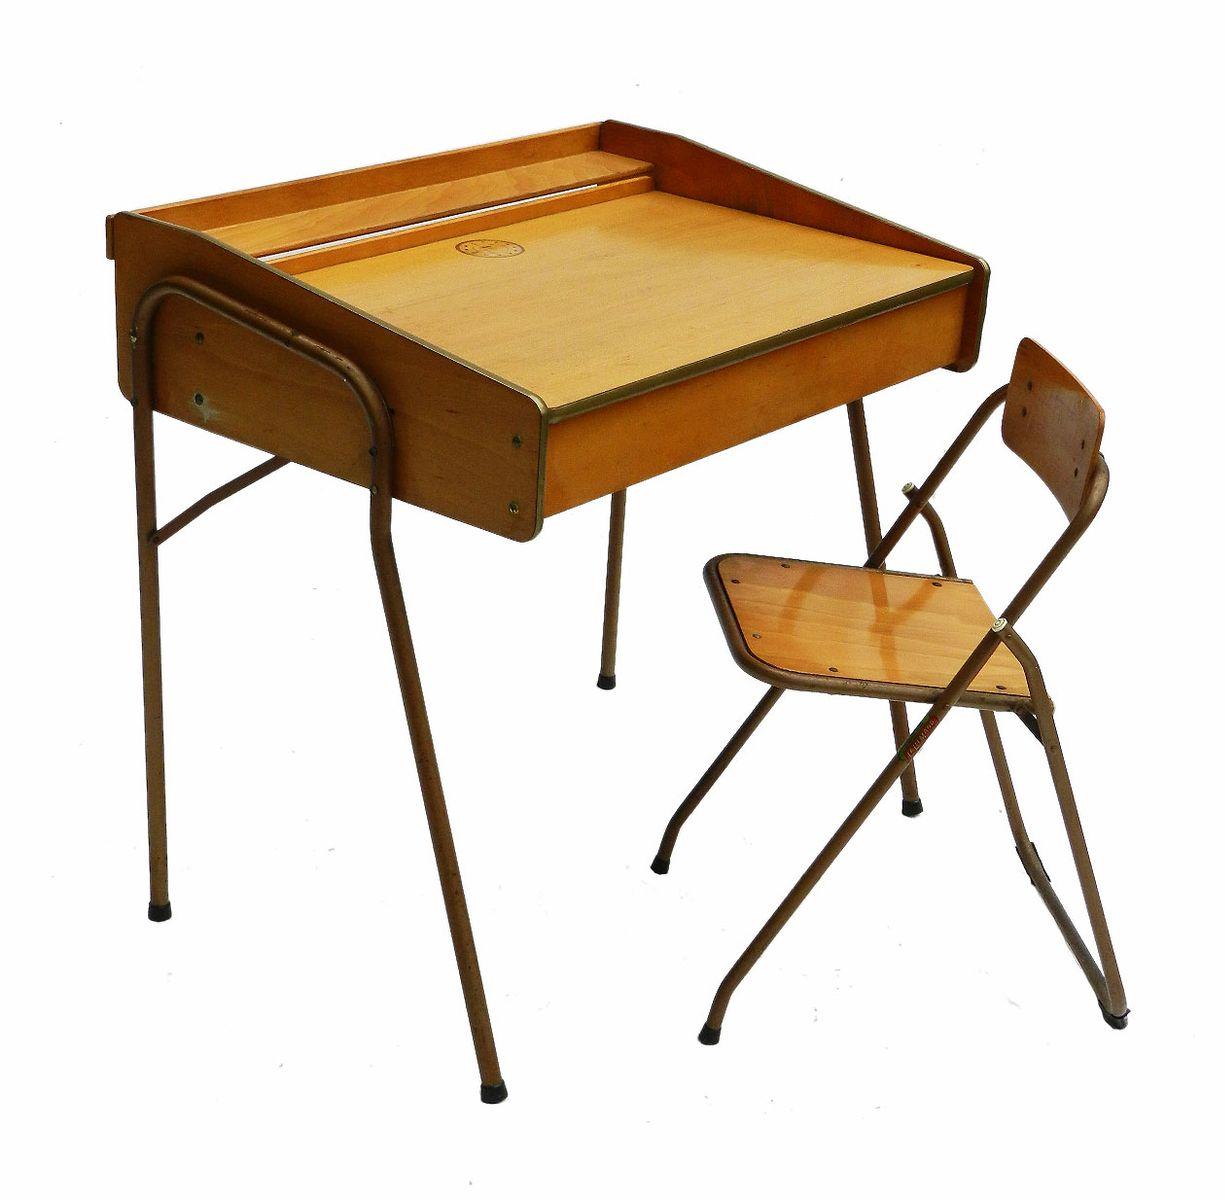 Folding Chair Desk french mid-century childs desk and folding chair from brevete